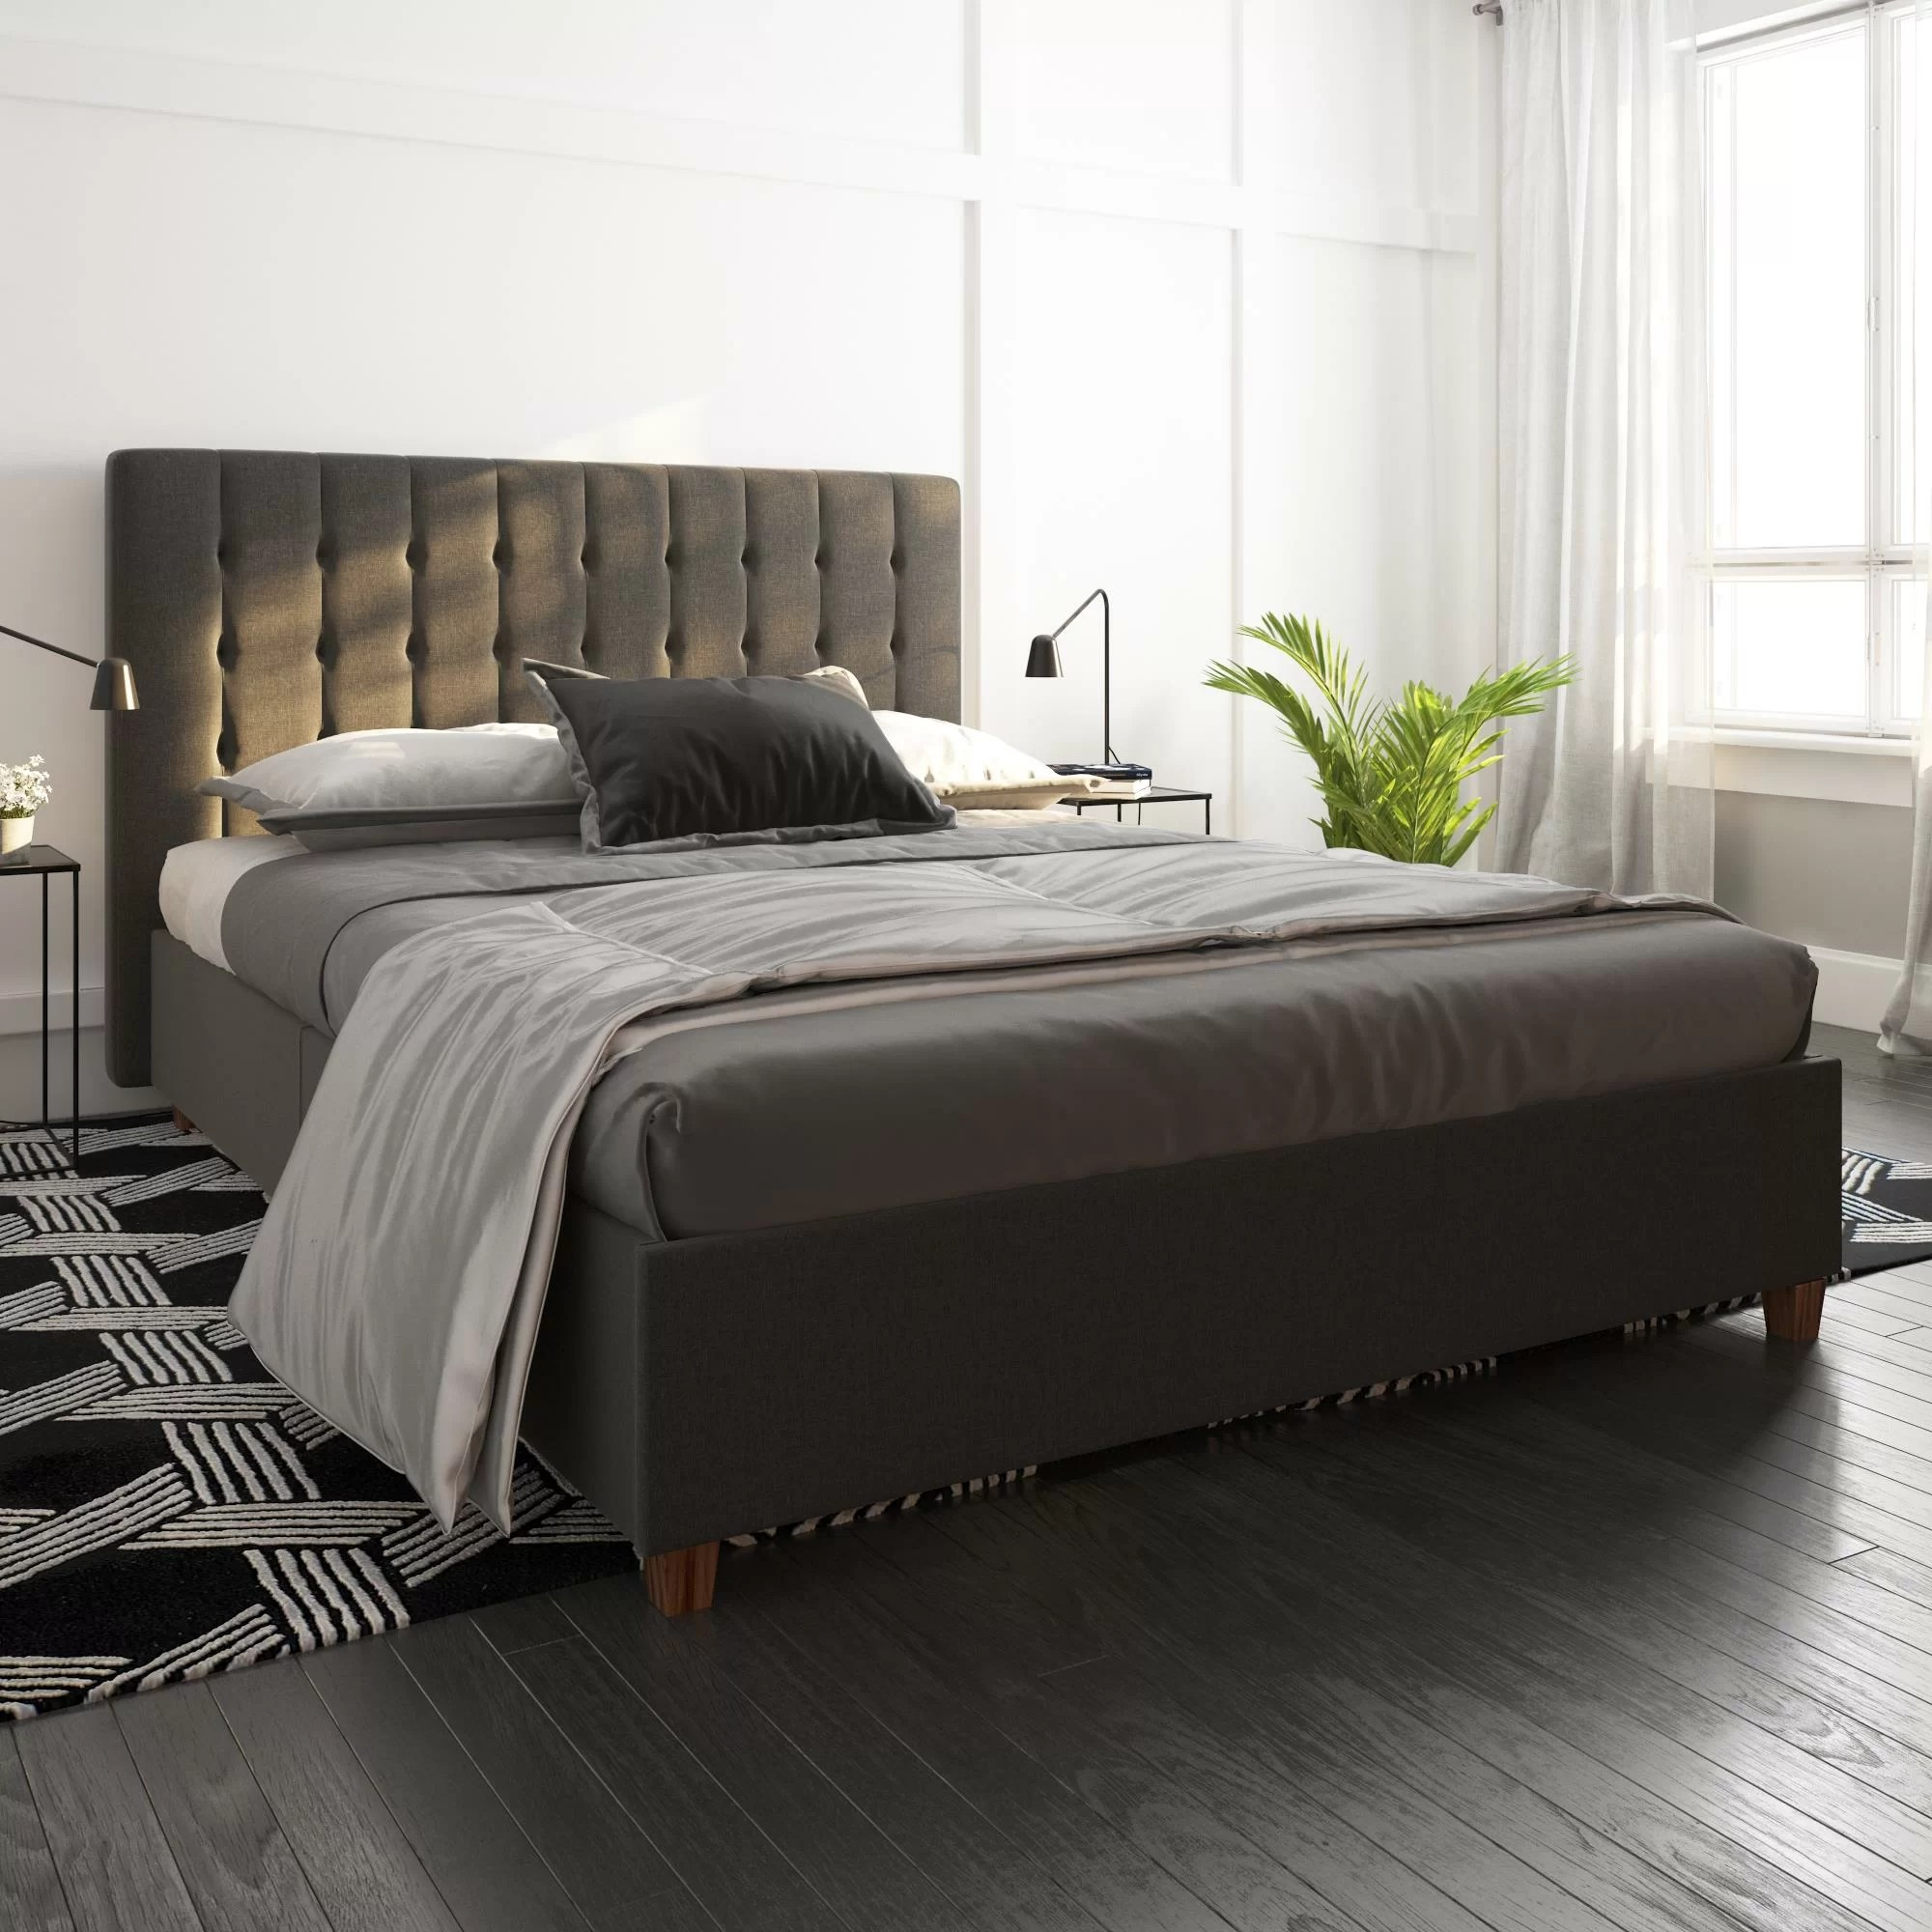 Queen Size Upholstered Beds You Ll Love In 2020 Wayfair